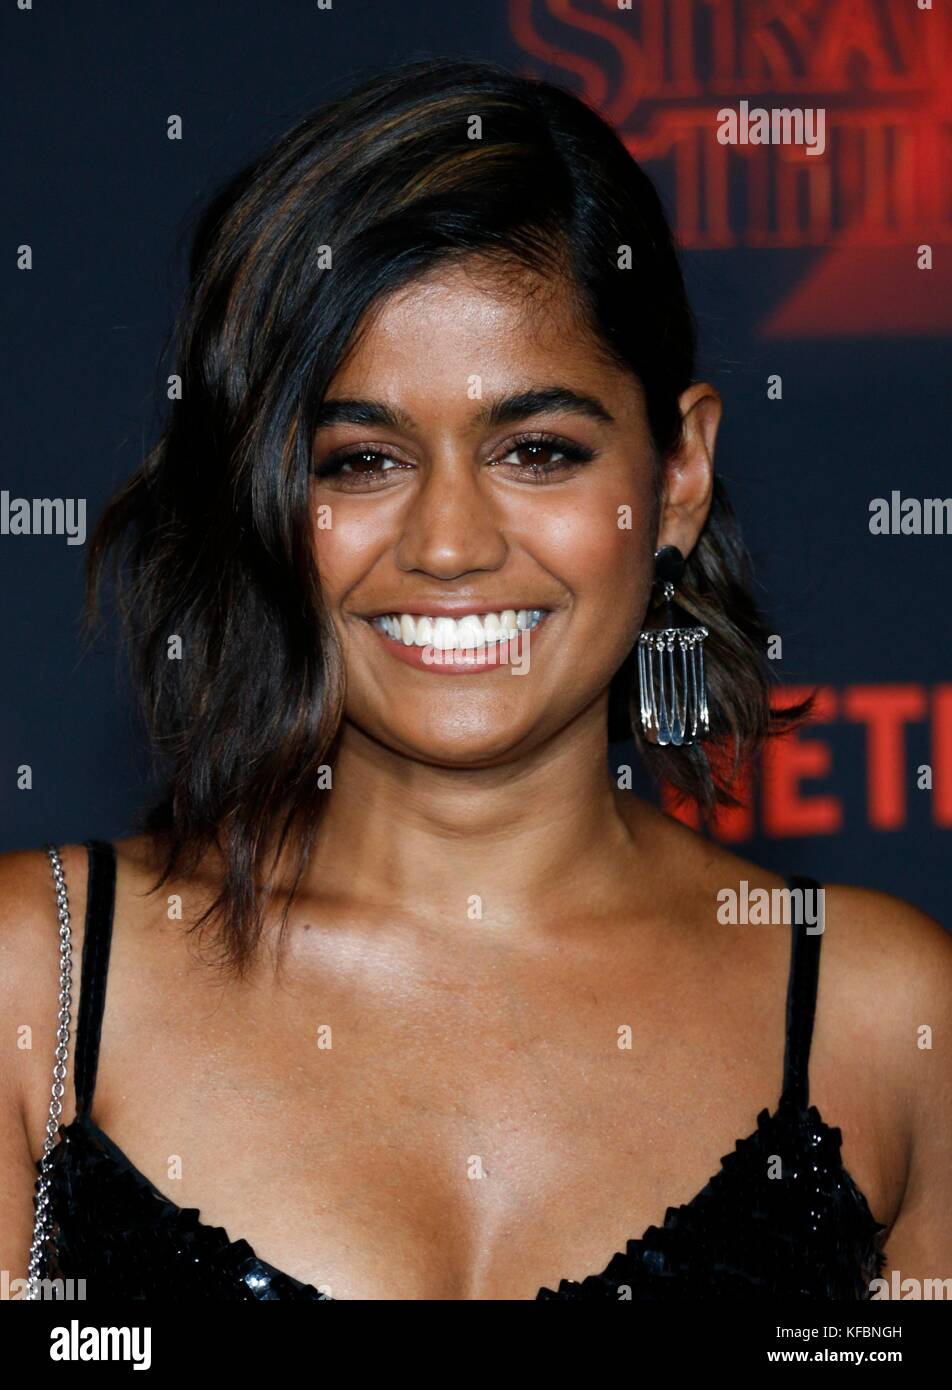 Los Angeles, CA, USA. 26th Oct, 2017. Linnea Berthelsen at arrivals for NETFLIX'S STRANGER THINGS 2 Premiere, - Stock Image